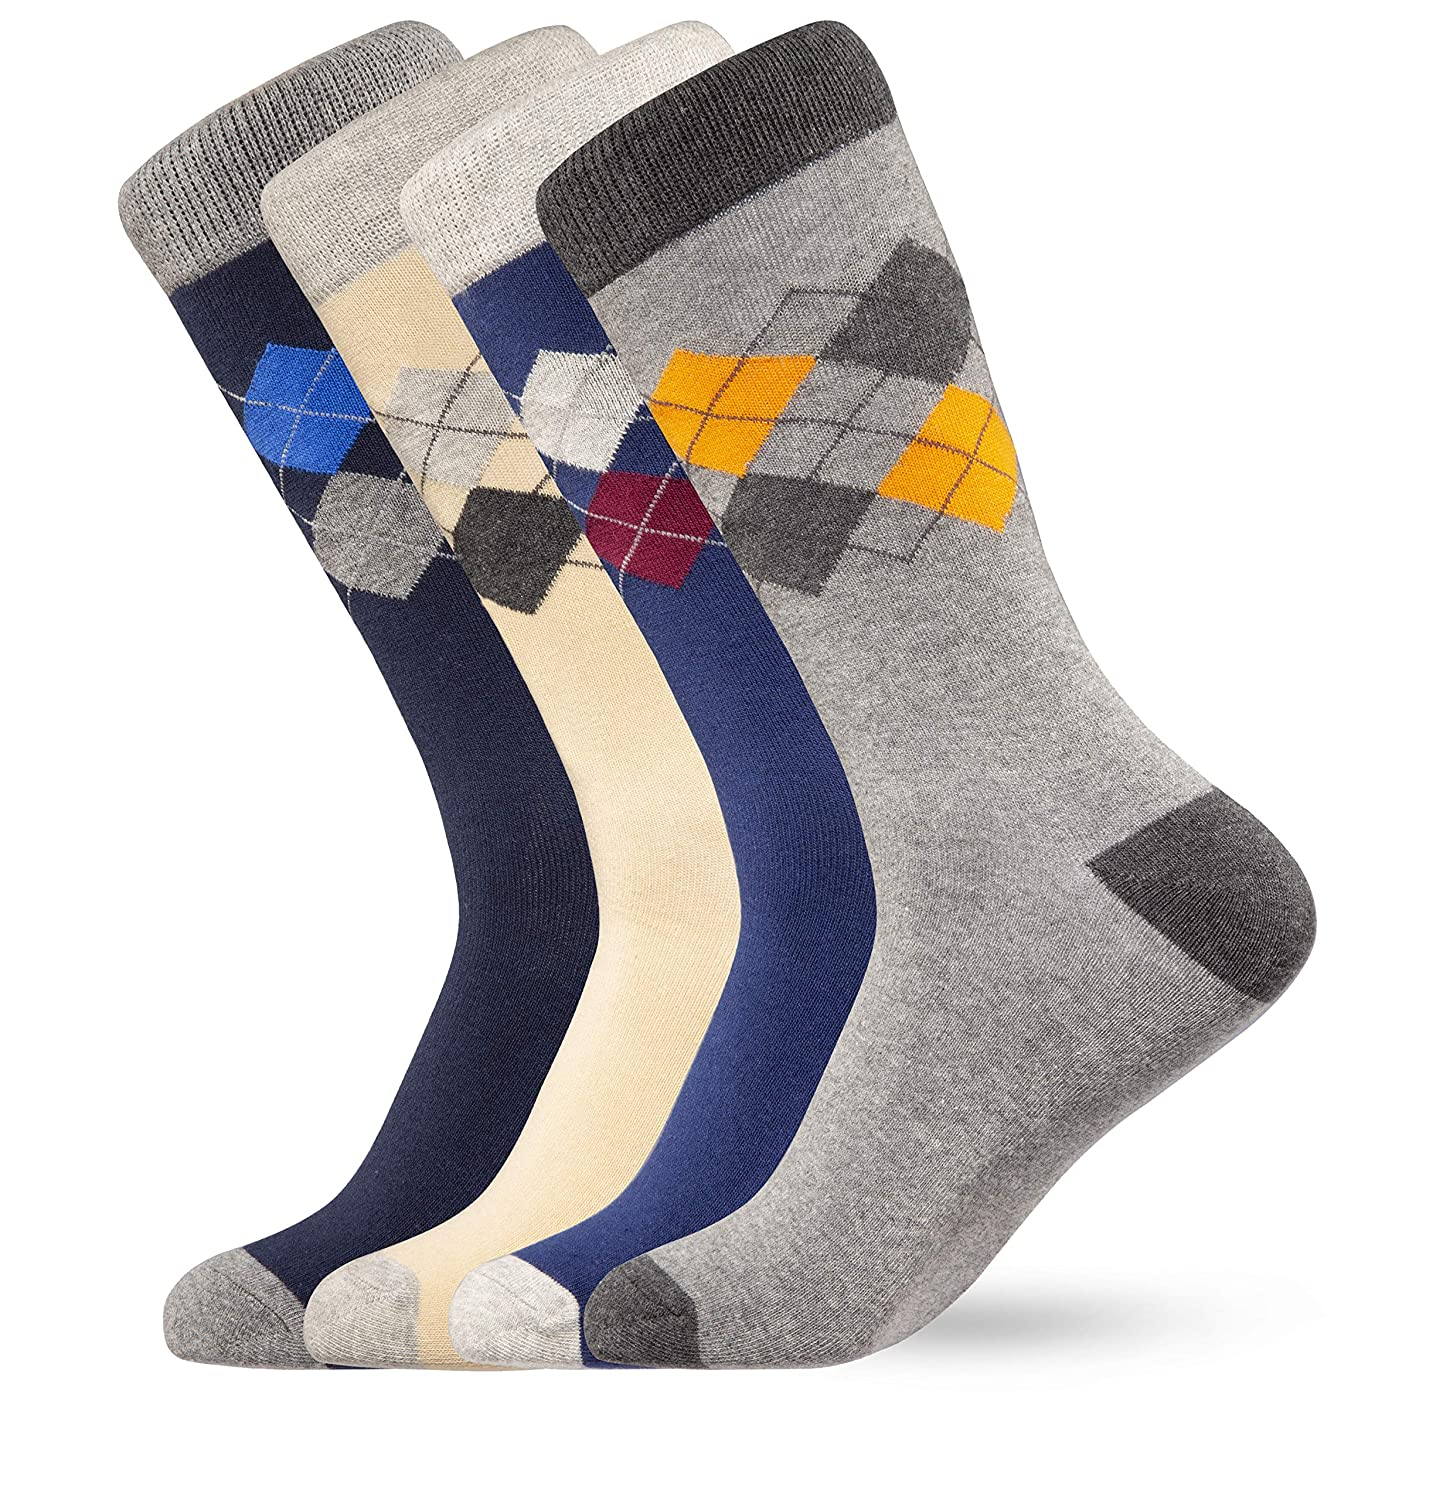 Finch Supply Co Assorted Colors Mens Dress Socks 4-Pack Cotton Size 8-13